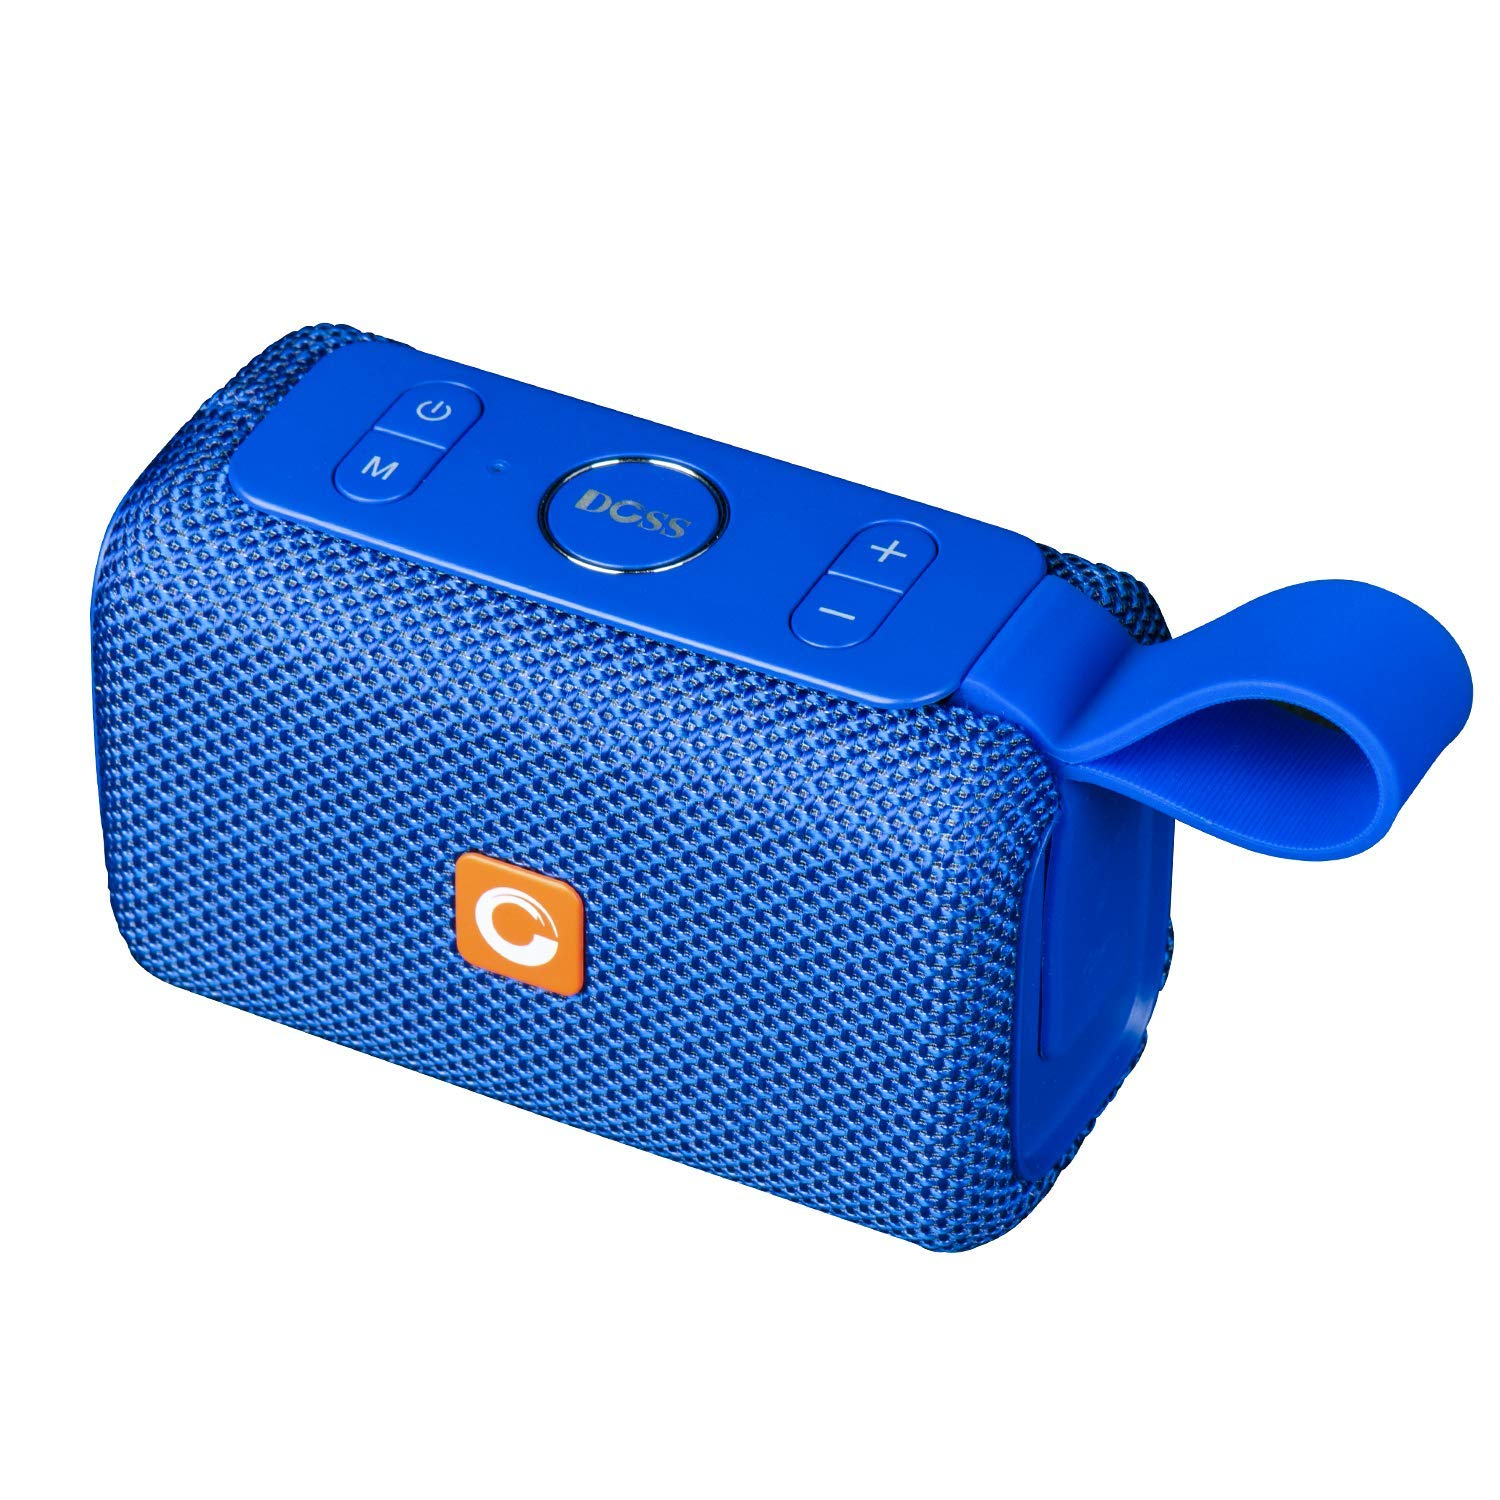 DOSS E-go Portable Bluetooth Speaker with Loud Volume, Increased Bass, IPX6 Waterproof, Built-in Mic. Perfect Wireless Speaker for Phone, Tablet, TV, and More(Grey) Wonders Tech E-go [Grey]